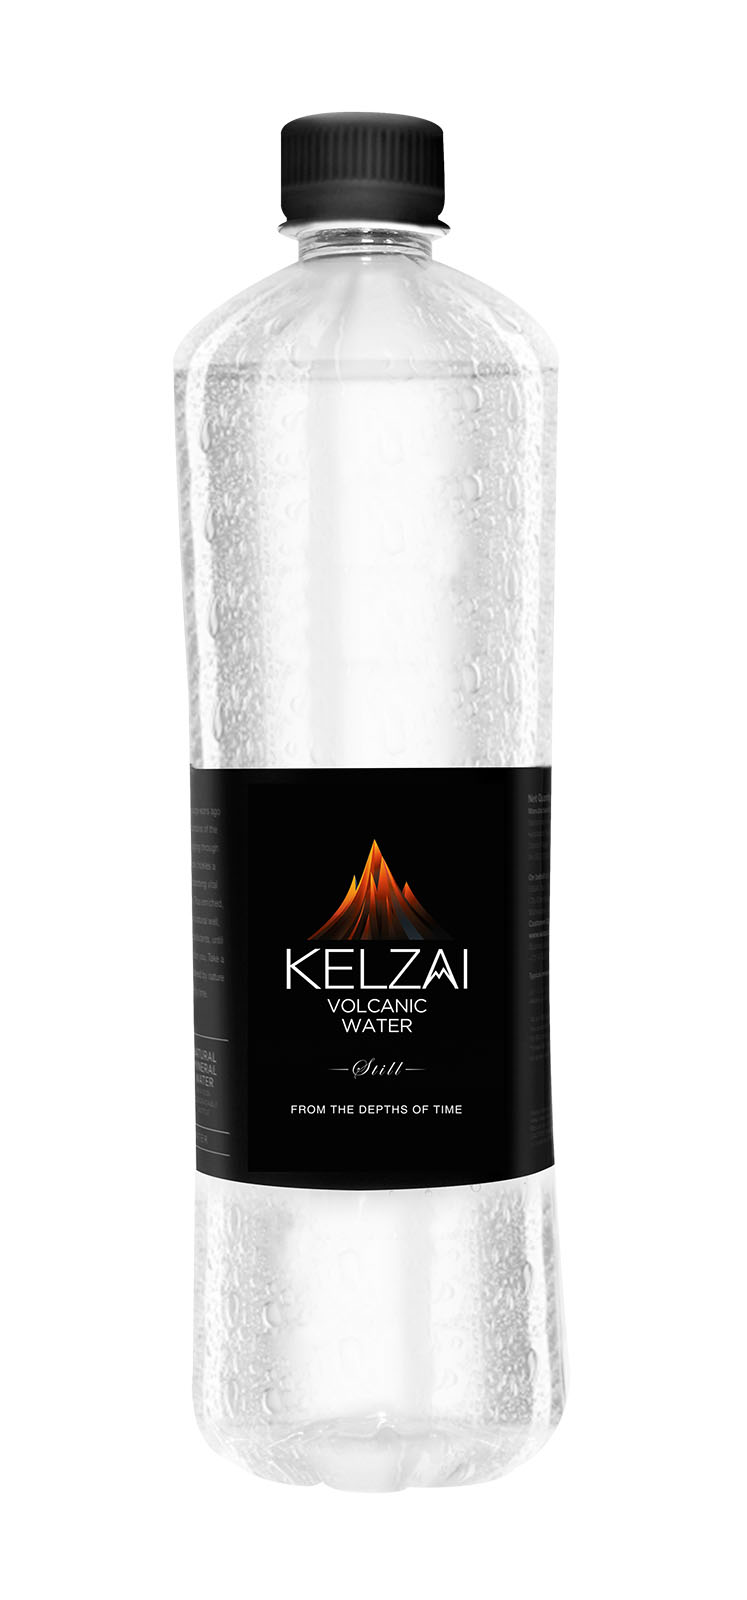 Kelzai Volcanic Water Finewaters